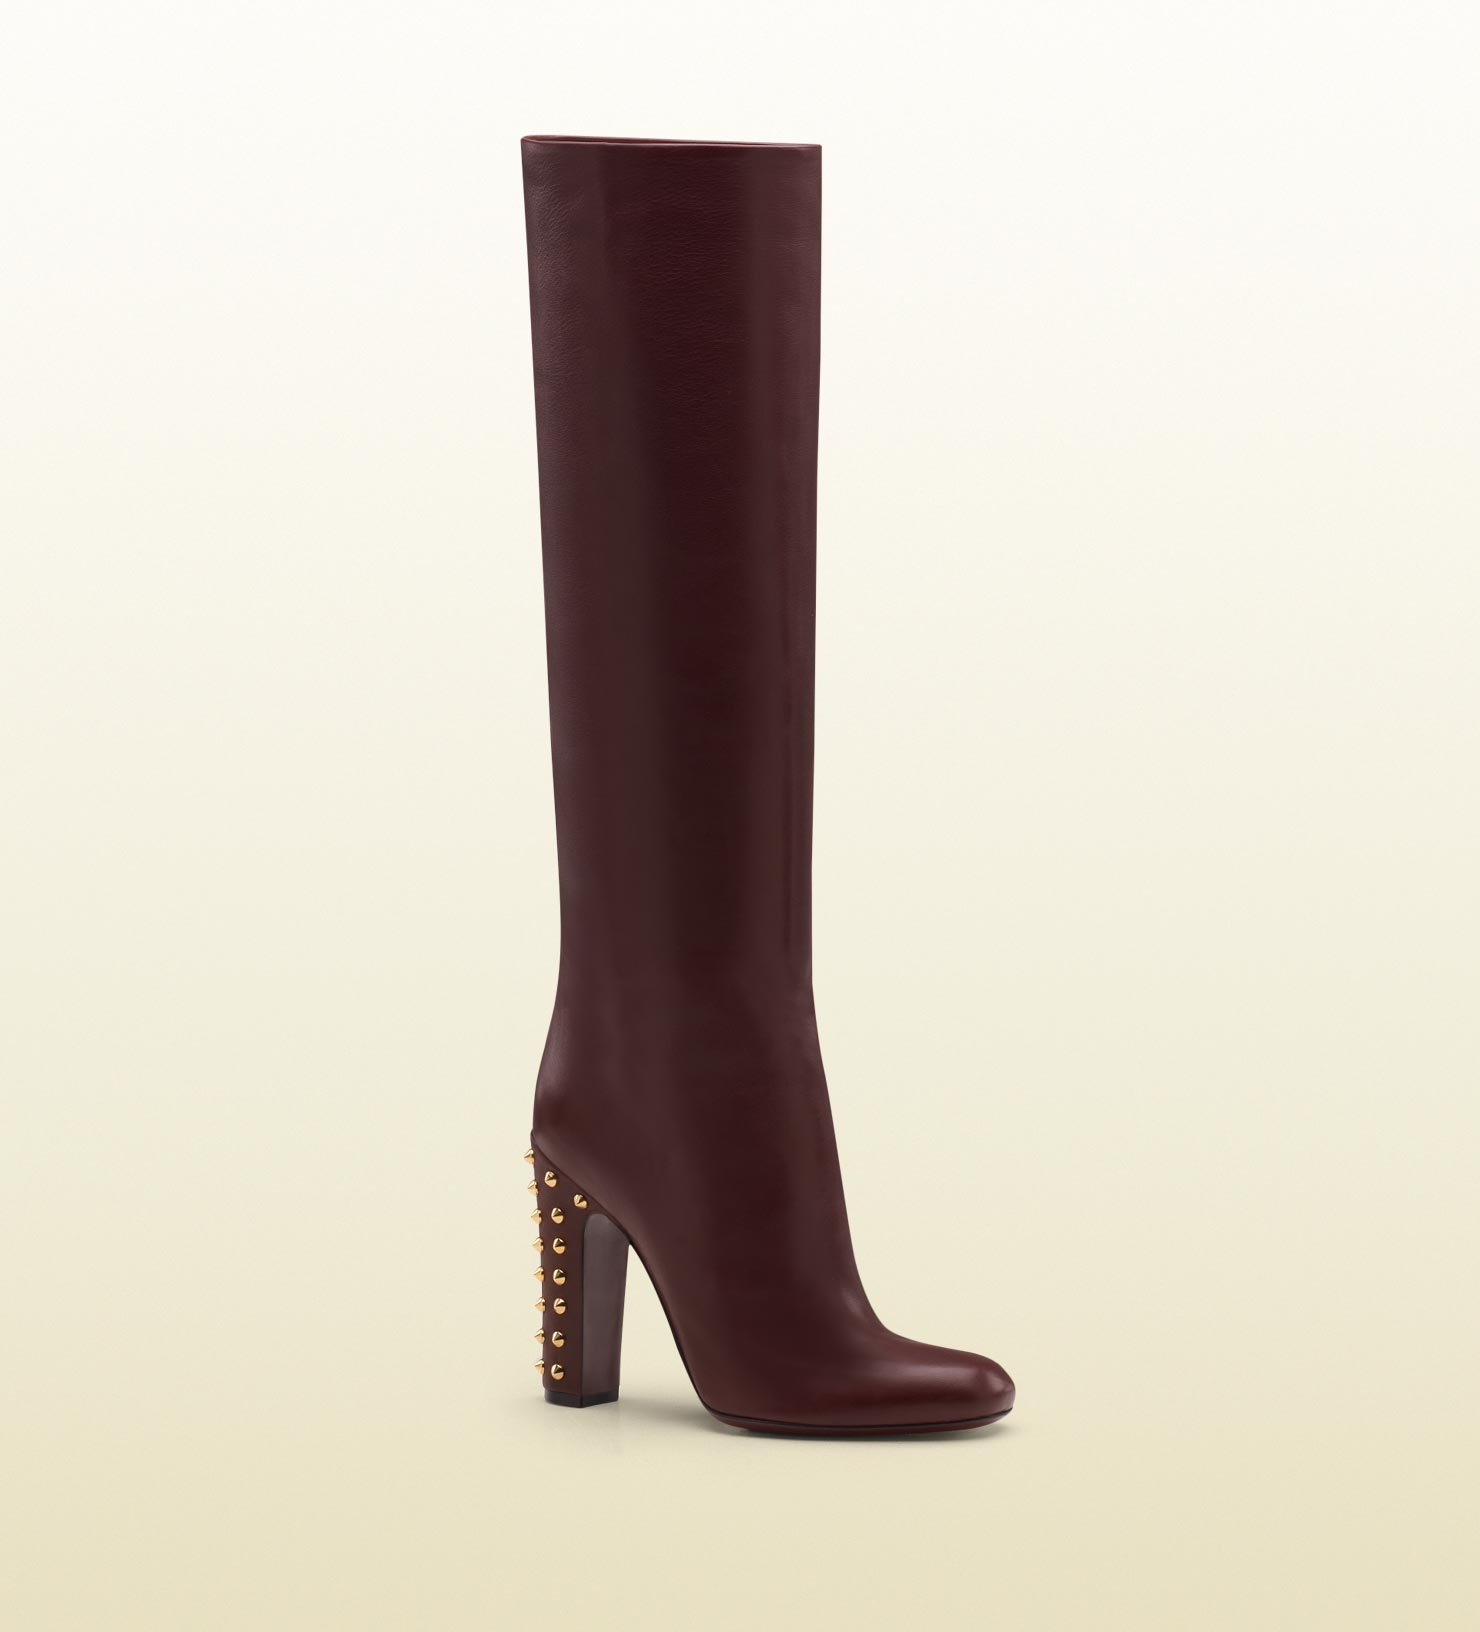 607136cfb Gucci Jacquelyne Studded Mid Heel Tall Boot in Red - Lyst